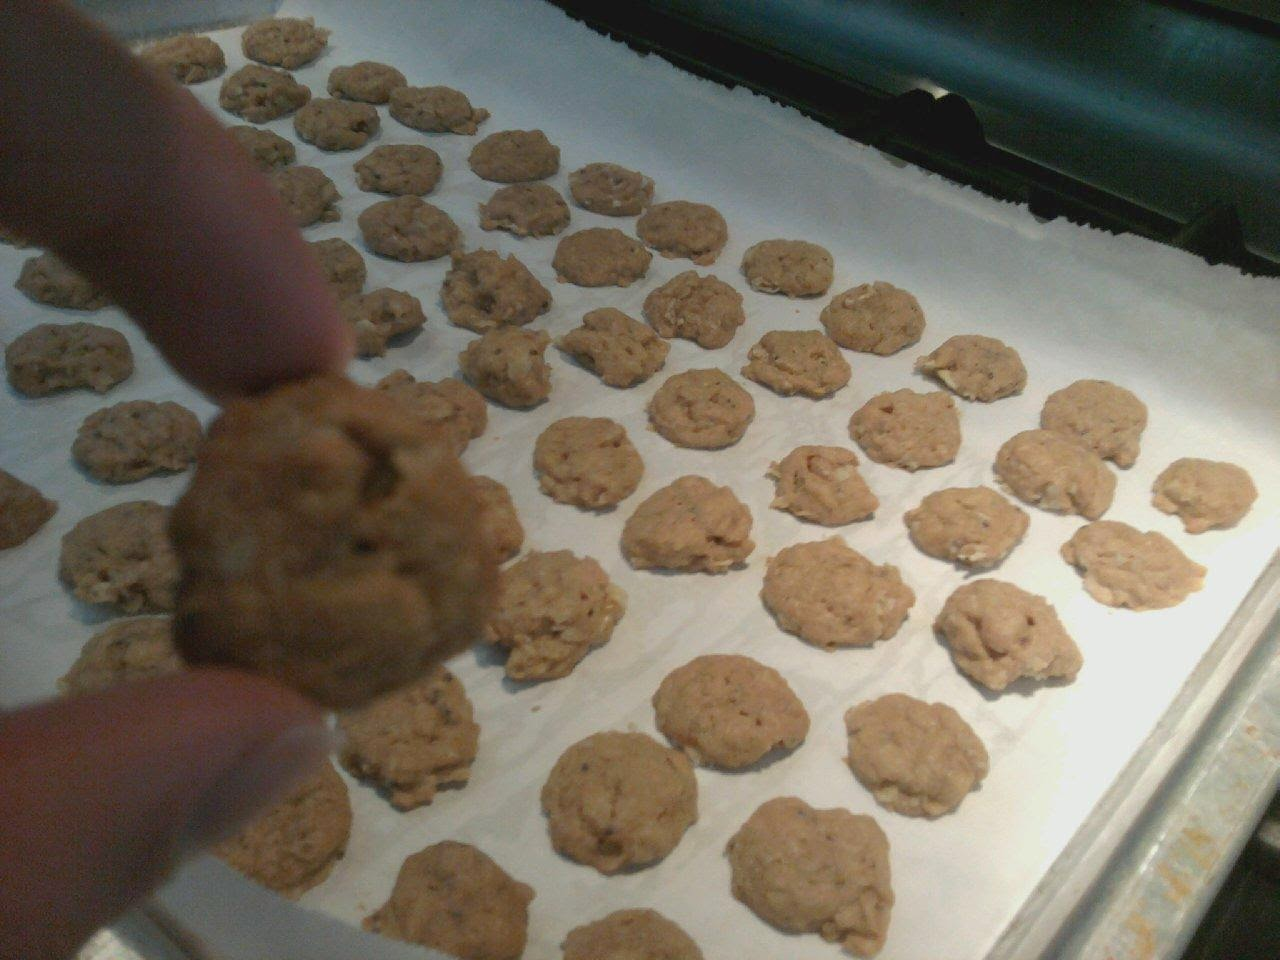 my own peanut butter cookie crisp cereal